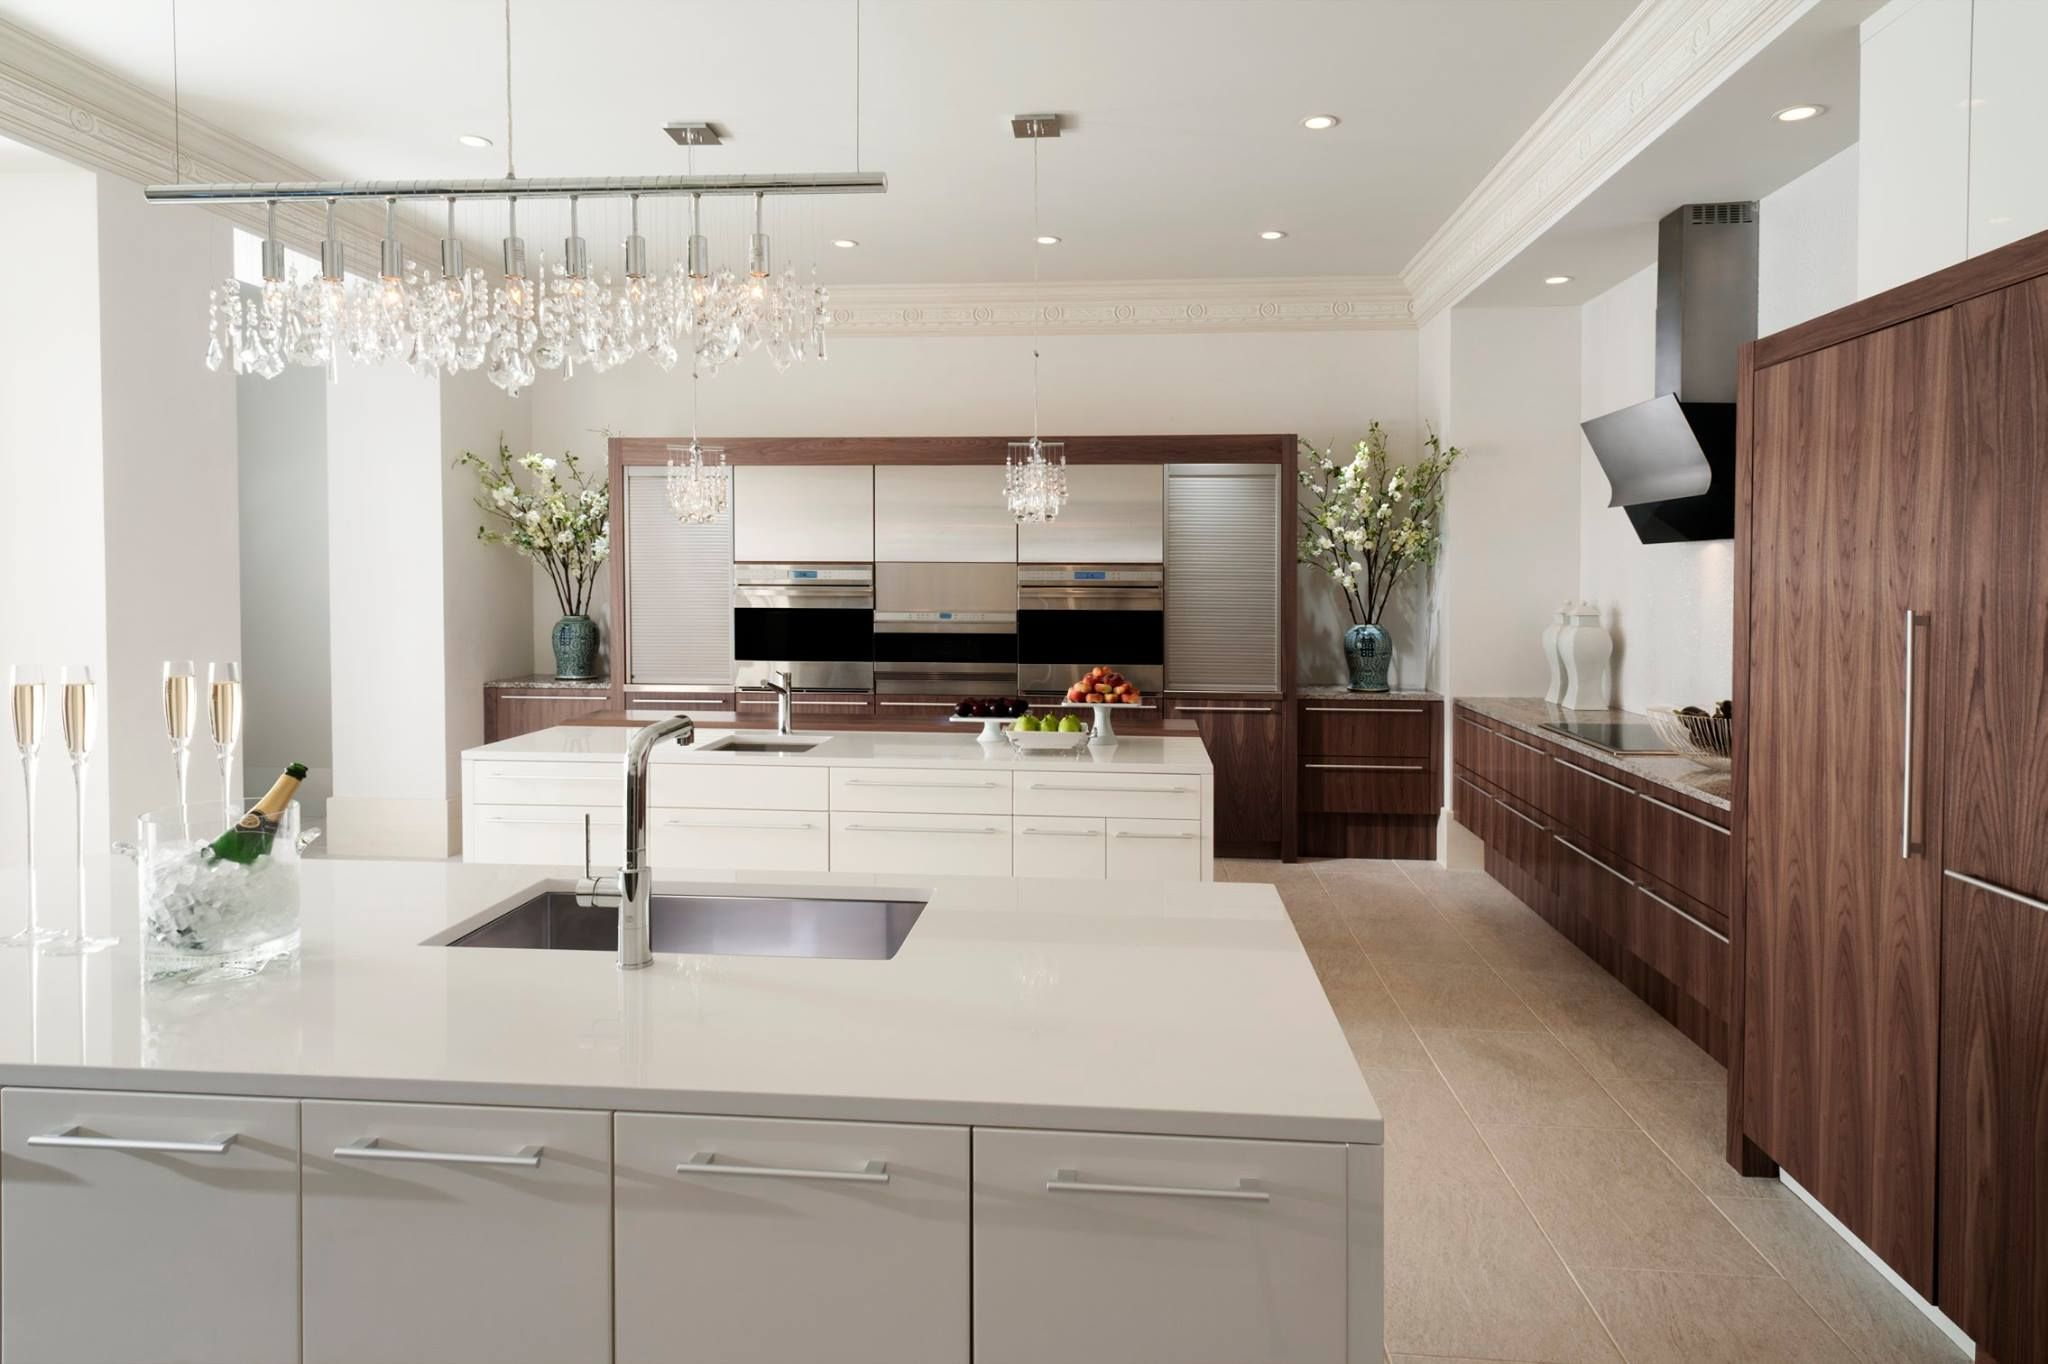 Wood Mode Kitchens Premade Kitchen Cabinets The Darker Cabinetry Is Perfect In Contrast To White Http Www Knsales Com Term 250